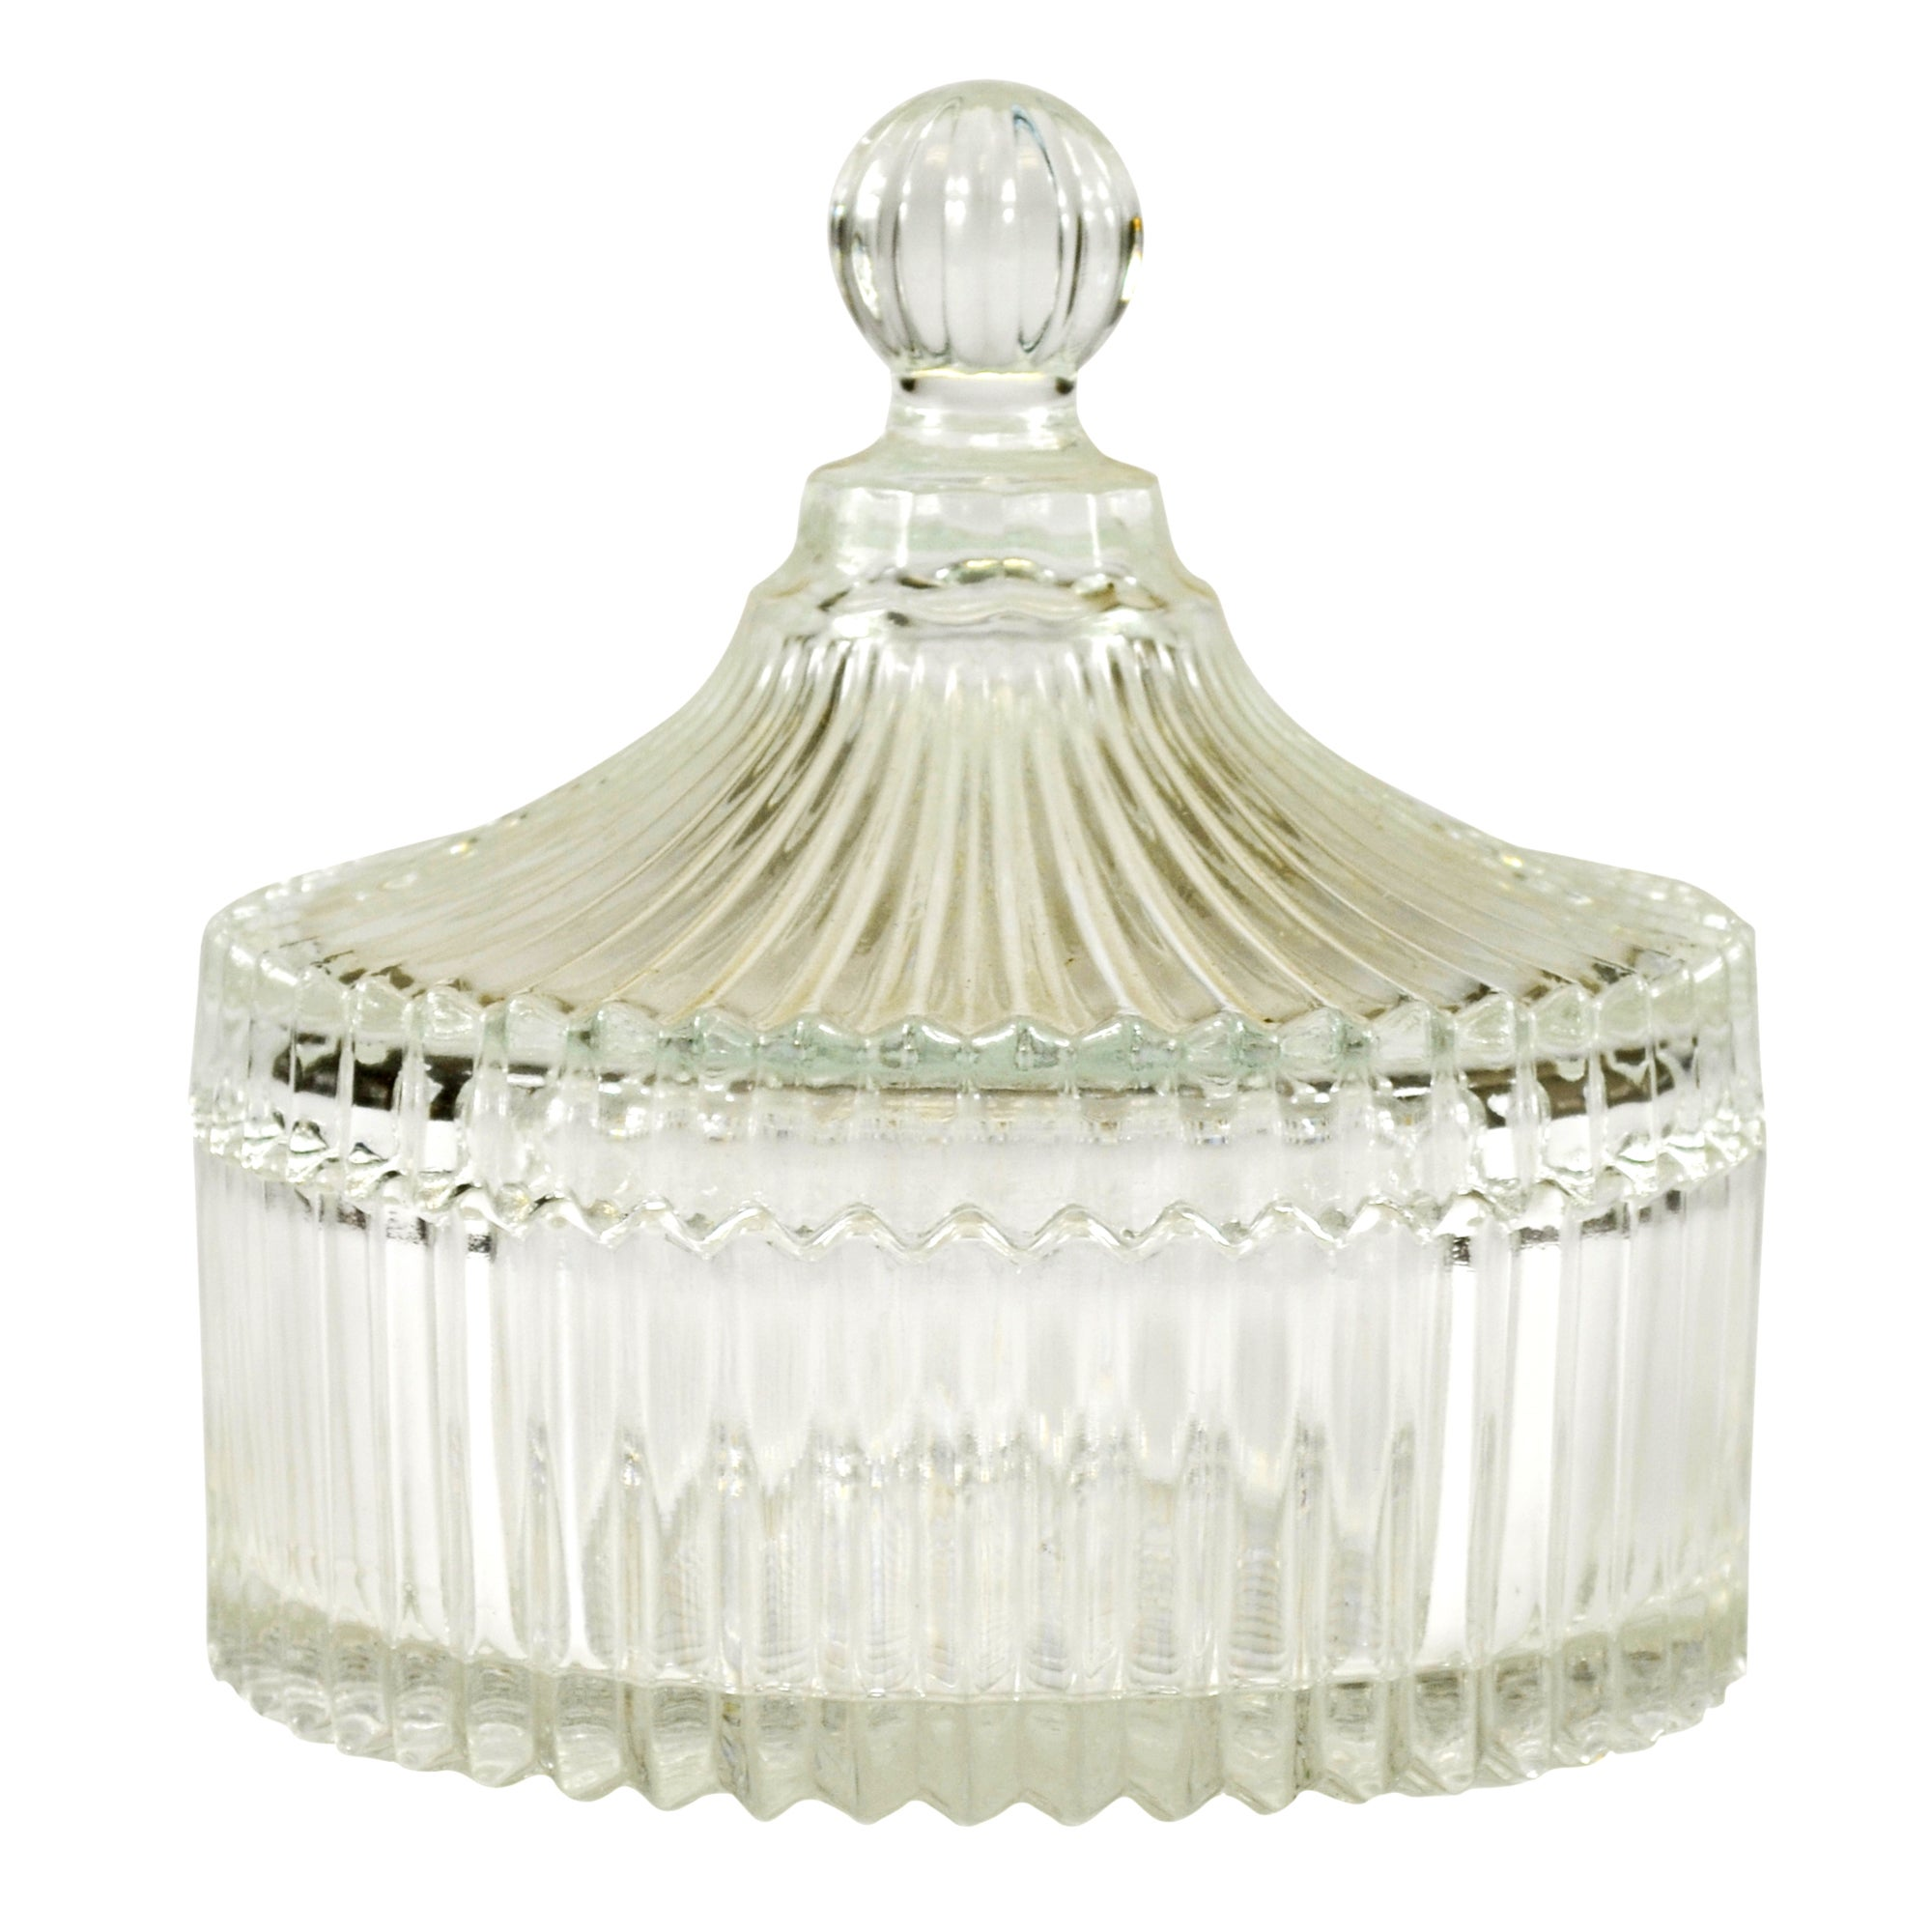 Room in Bloom Collection Lidded Trinket Jar